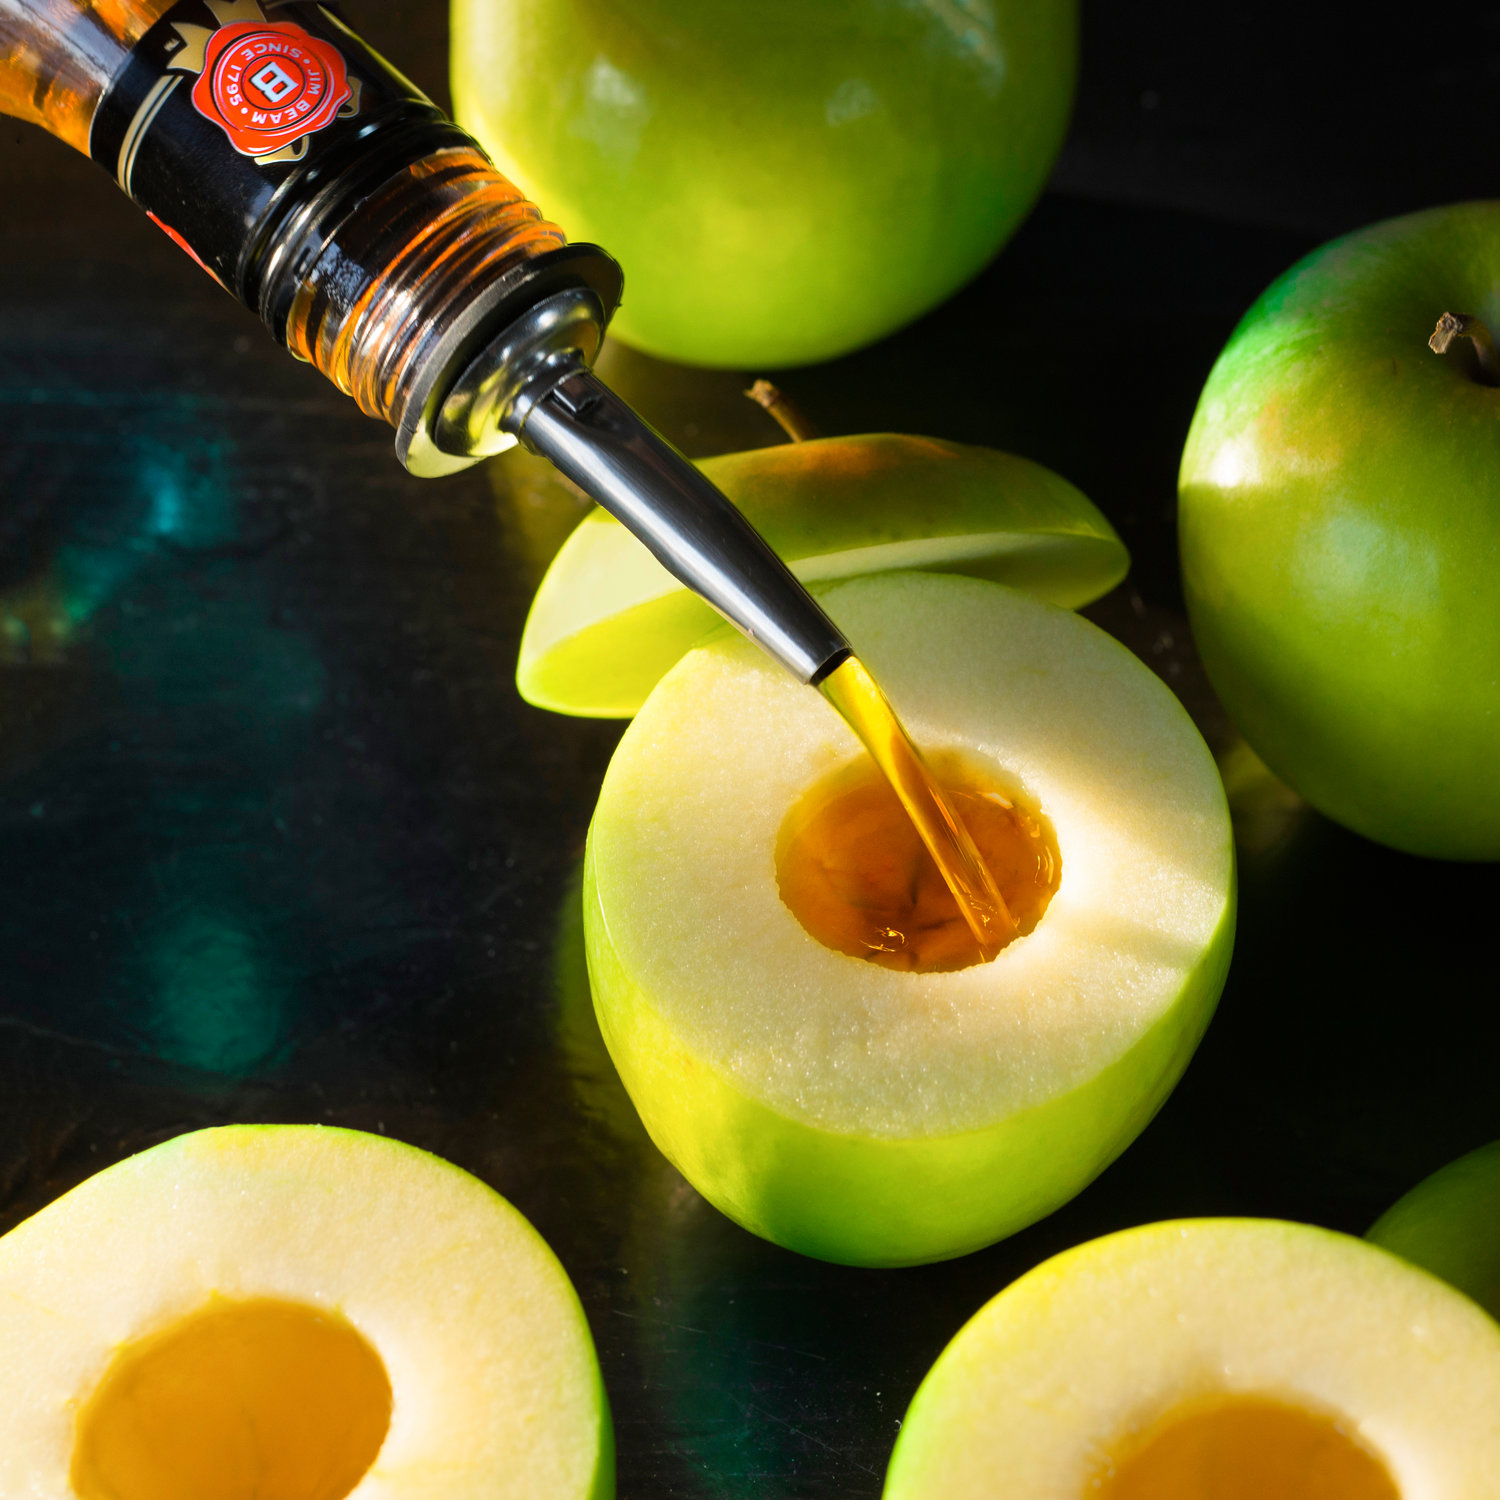 Jim Beam Additional Work - Apples